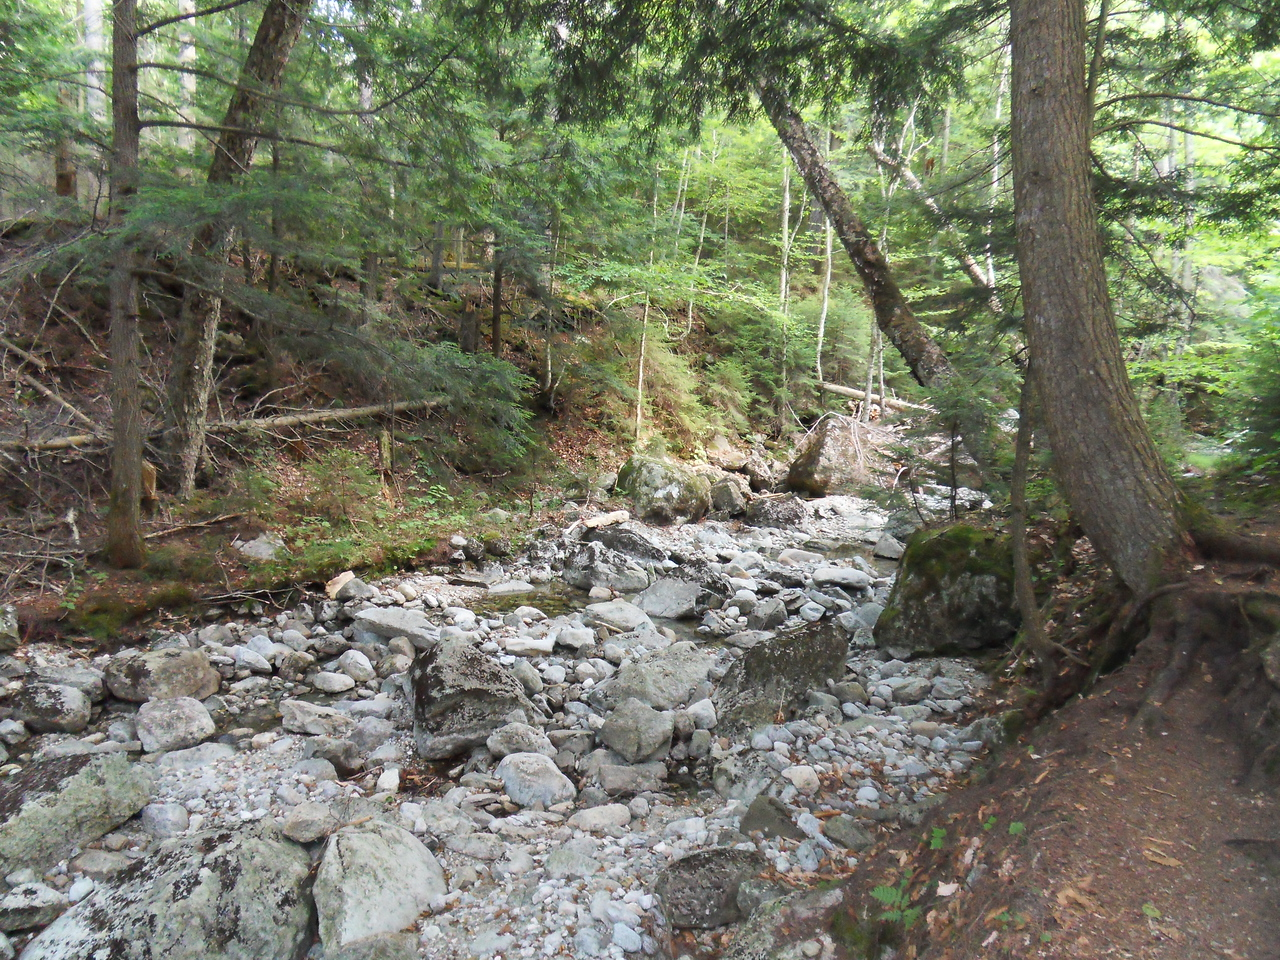 Luckily we did, this was the creekbed. Don't know where the trout went. Hopefully a martin or fisher will find them.